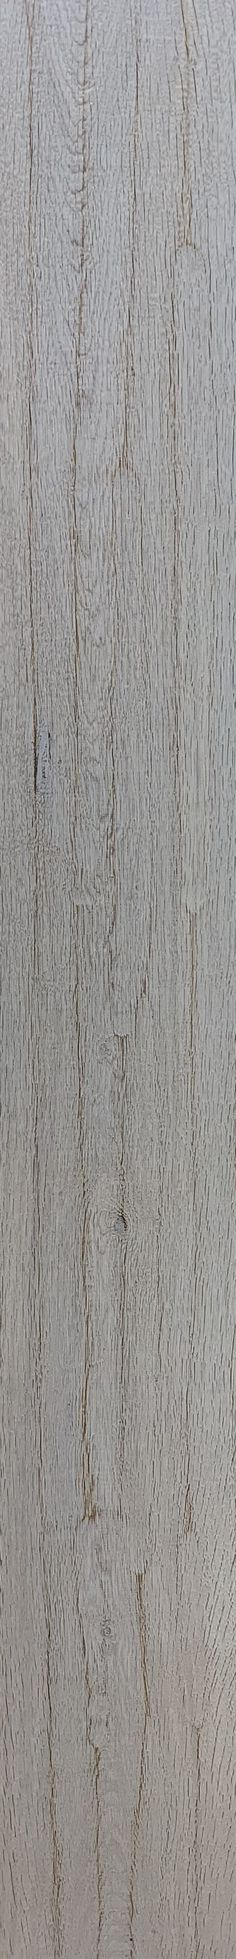 These are truly unique, handscraped and hand-finished wide plank engineered flooring.   Suitable as a wood for wall cladding.   #homedecor #interiordesign #woodflooring #wideplankflooring #handscrapedflooring #engineeredhardwoodflooring